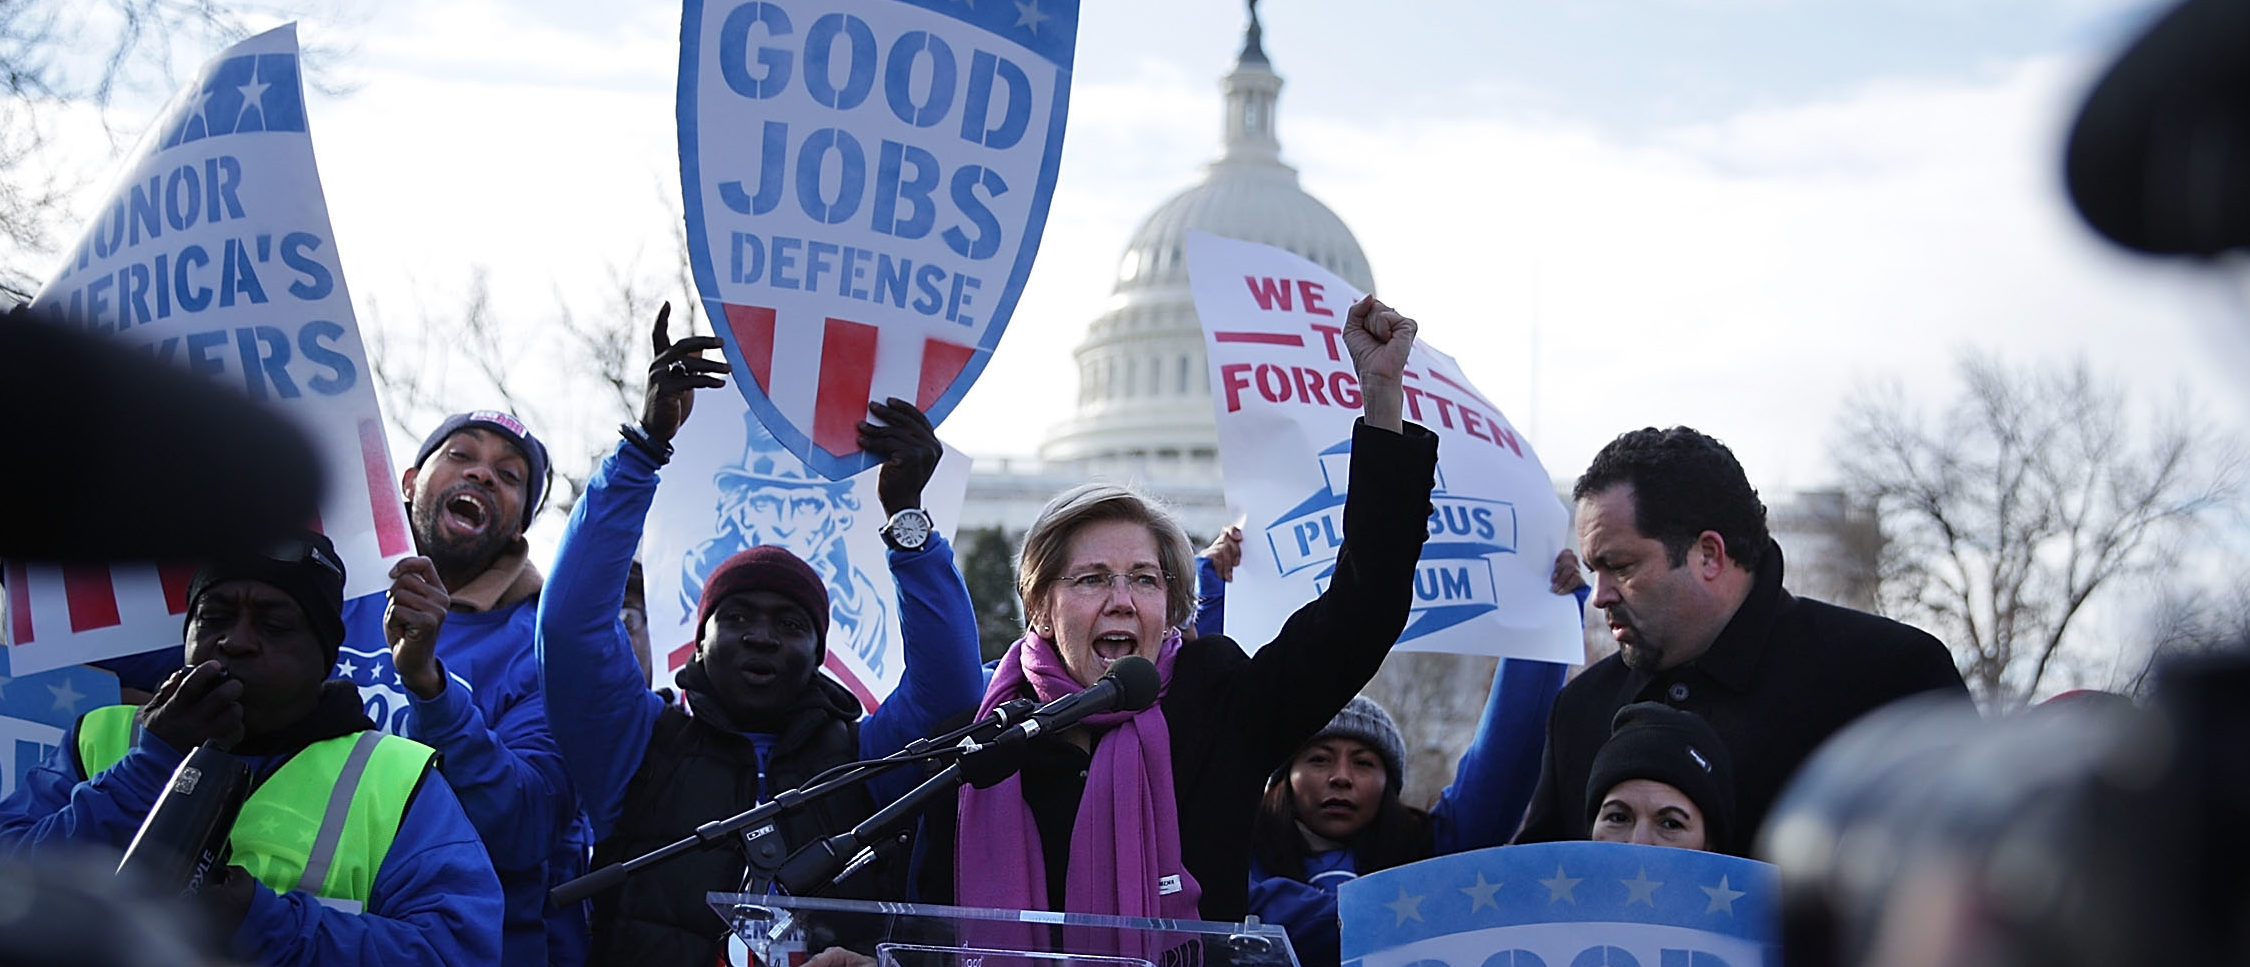 "WASHINGTON, DC - FEBRUARY 16: U.S. Sen. Elizabeth Warren (D-MA) (C) speaks as former president and CEO of NAACP Ben Jealous (R) looks on during a rally ""to fight-back against the Republican war on the working class"" February 16, 2017 at Upper Senate Park on Capitol Hill in Washington, DC. Activists held a rally to celebrate Andrew Puzder's decision to withdraw from consideration to be secretary of labor and Òto hold [President] Trump accountable to the working class."" (Photo by Alex Wong/Getty Images)"